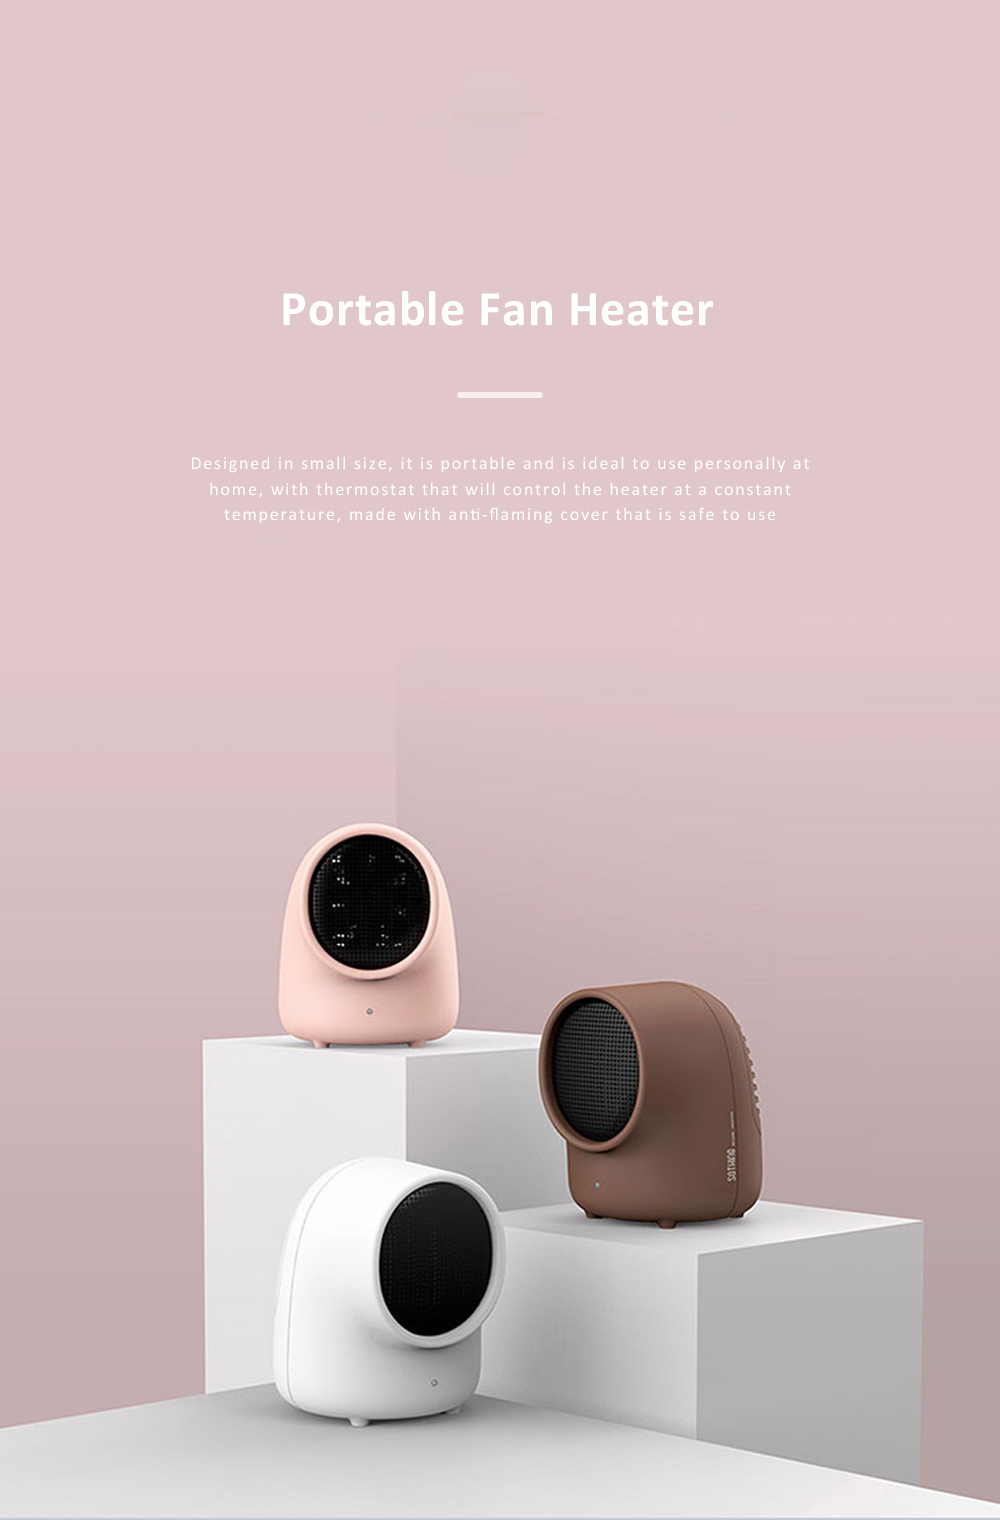 Portable Heater Domestic Small Warm Air Fan Thermostat Self-control Scald-proof Personal Heating Machine 0